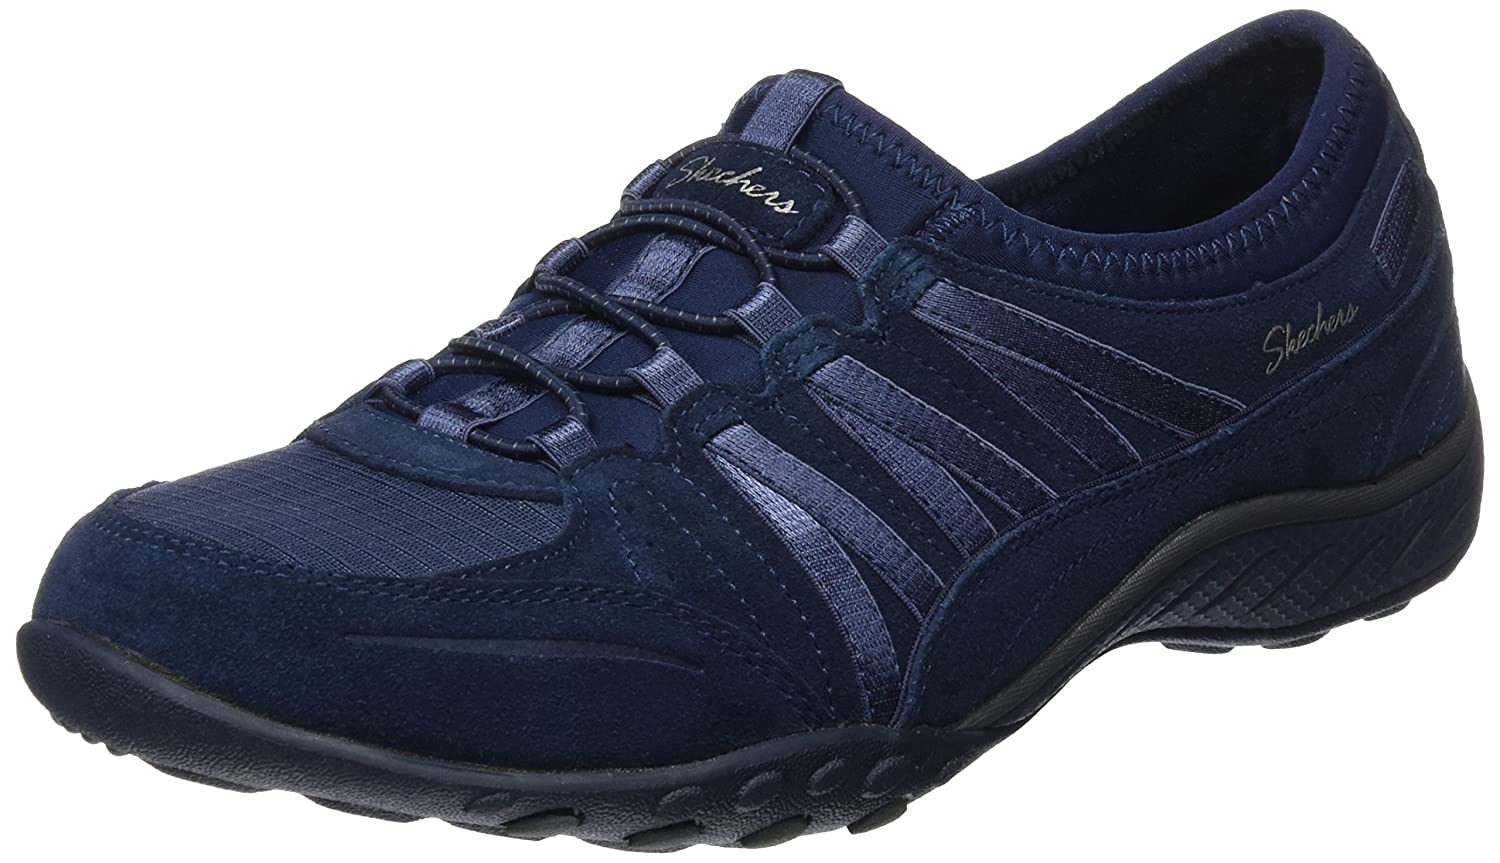 Skechers Sport Women's Relaxation Breathe Easy Moneybags Sneaker B01LZRL8CD 11 C/D US|Navy